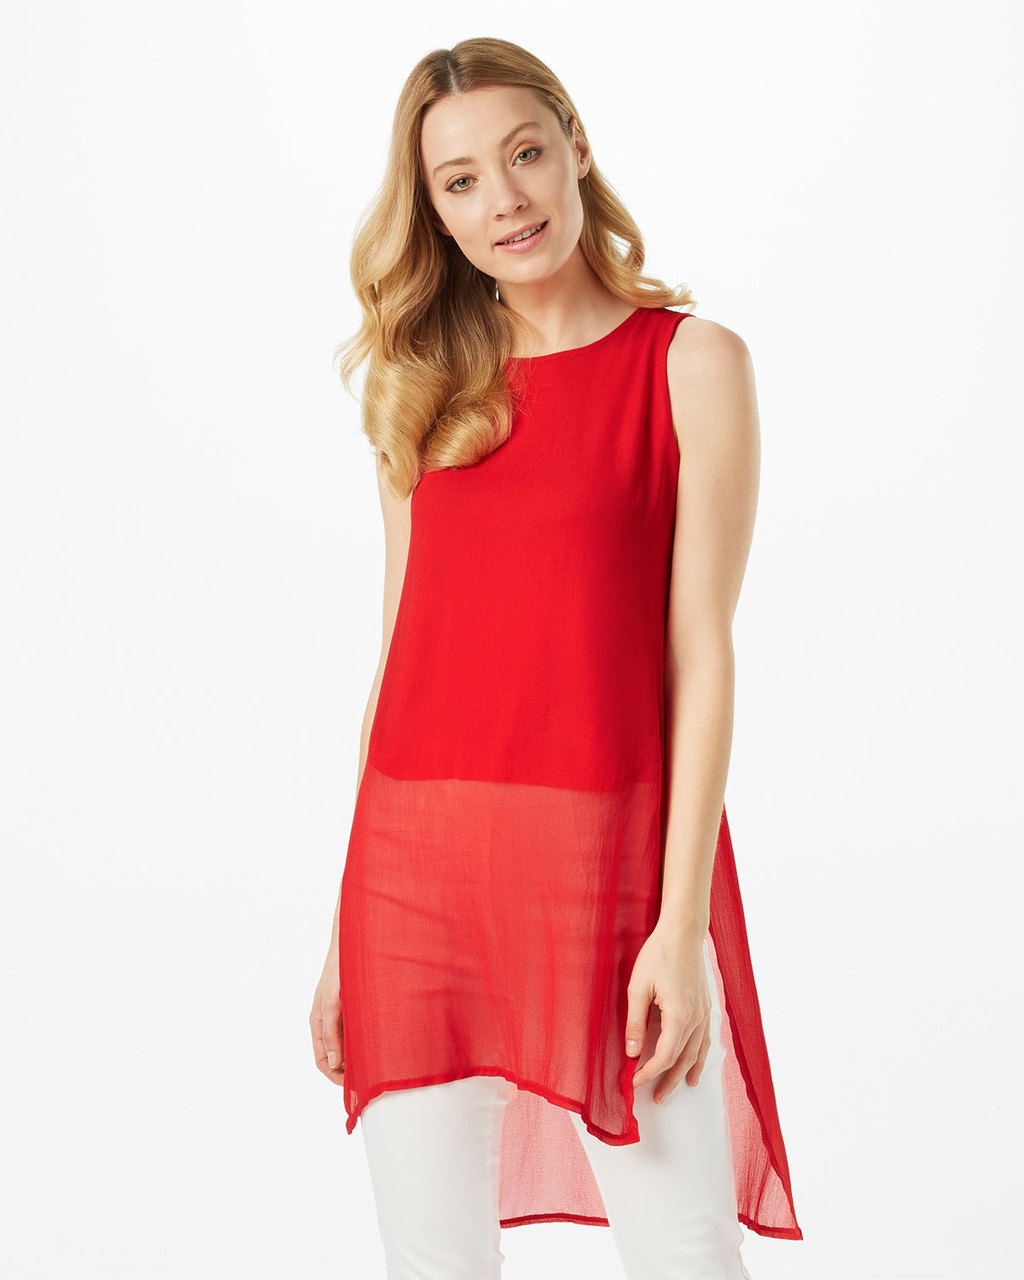 Clara Tabard Tunic - neckline: round neck; pattern: plain; sleeve style: sleeveless; length: below the bottom; style: tunic; hip detail: draws attention to hips; predominant colour: true red; occasions: casual, evening, creative work; fibres: viscose/rayon - 100%; fit: loose; sleeve length: sleeveless; texture group: sheer fabrics/chiffon/organza etc.; pattern type: fabric; season: s/s 2016; wardrobe: highlight